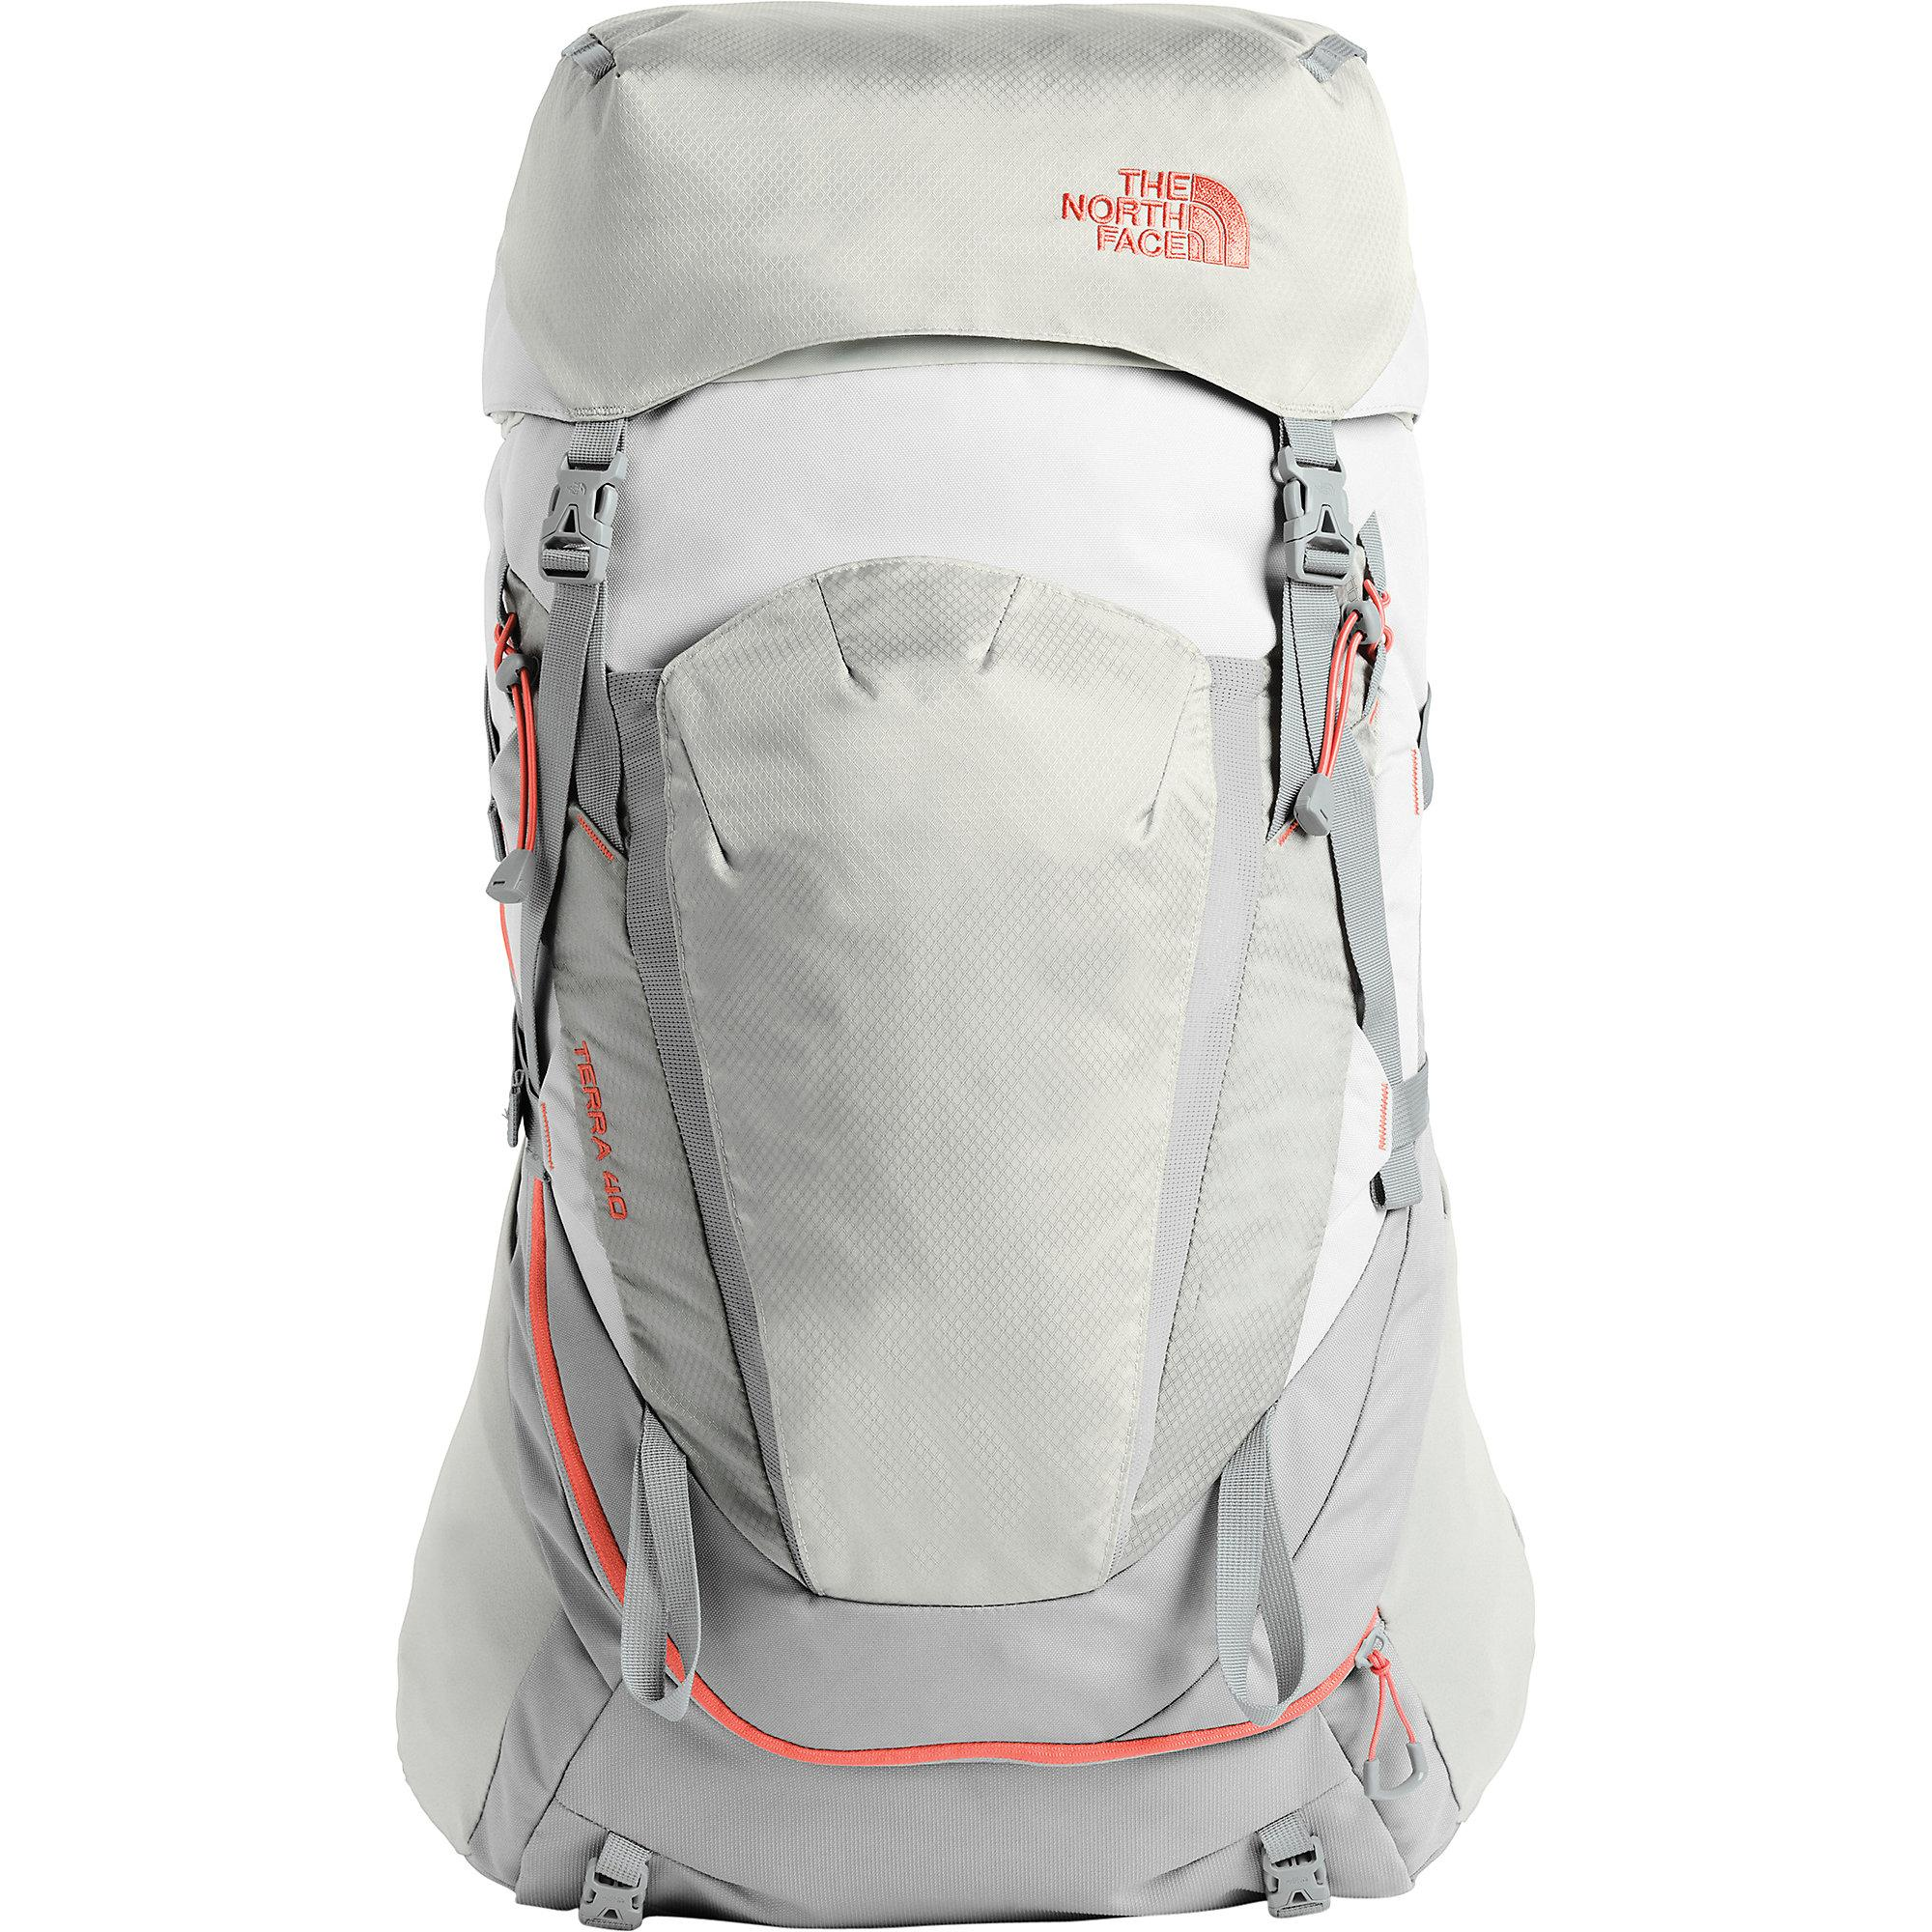 f2d67f211 The North Face Terra 40 Pack in Gray - Lyst